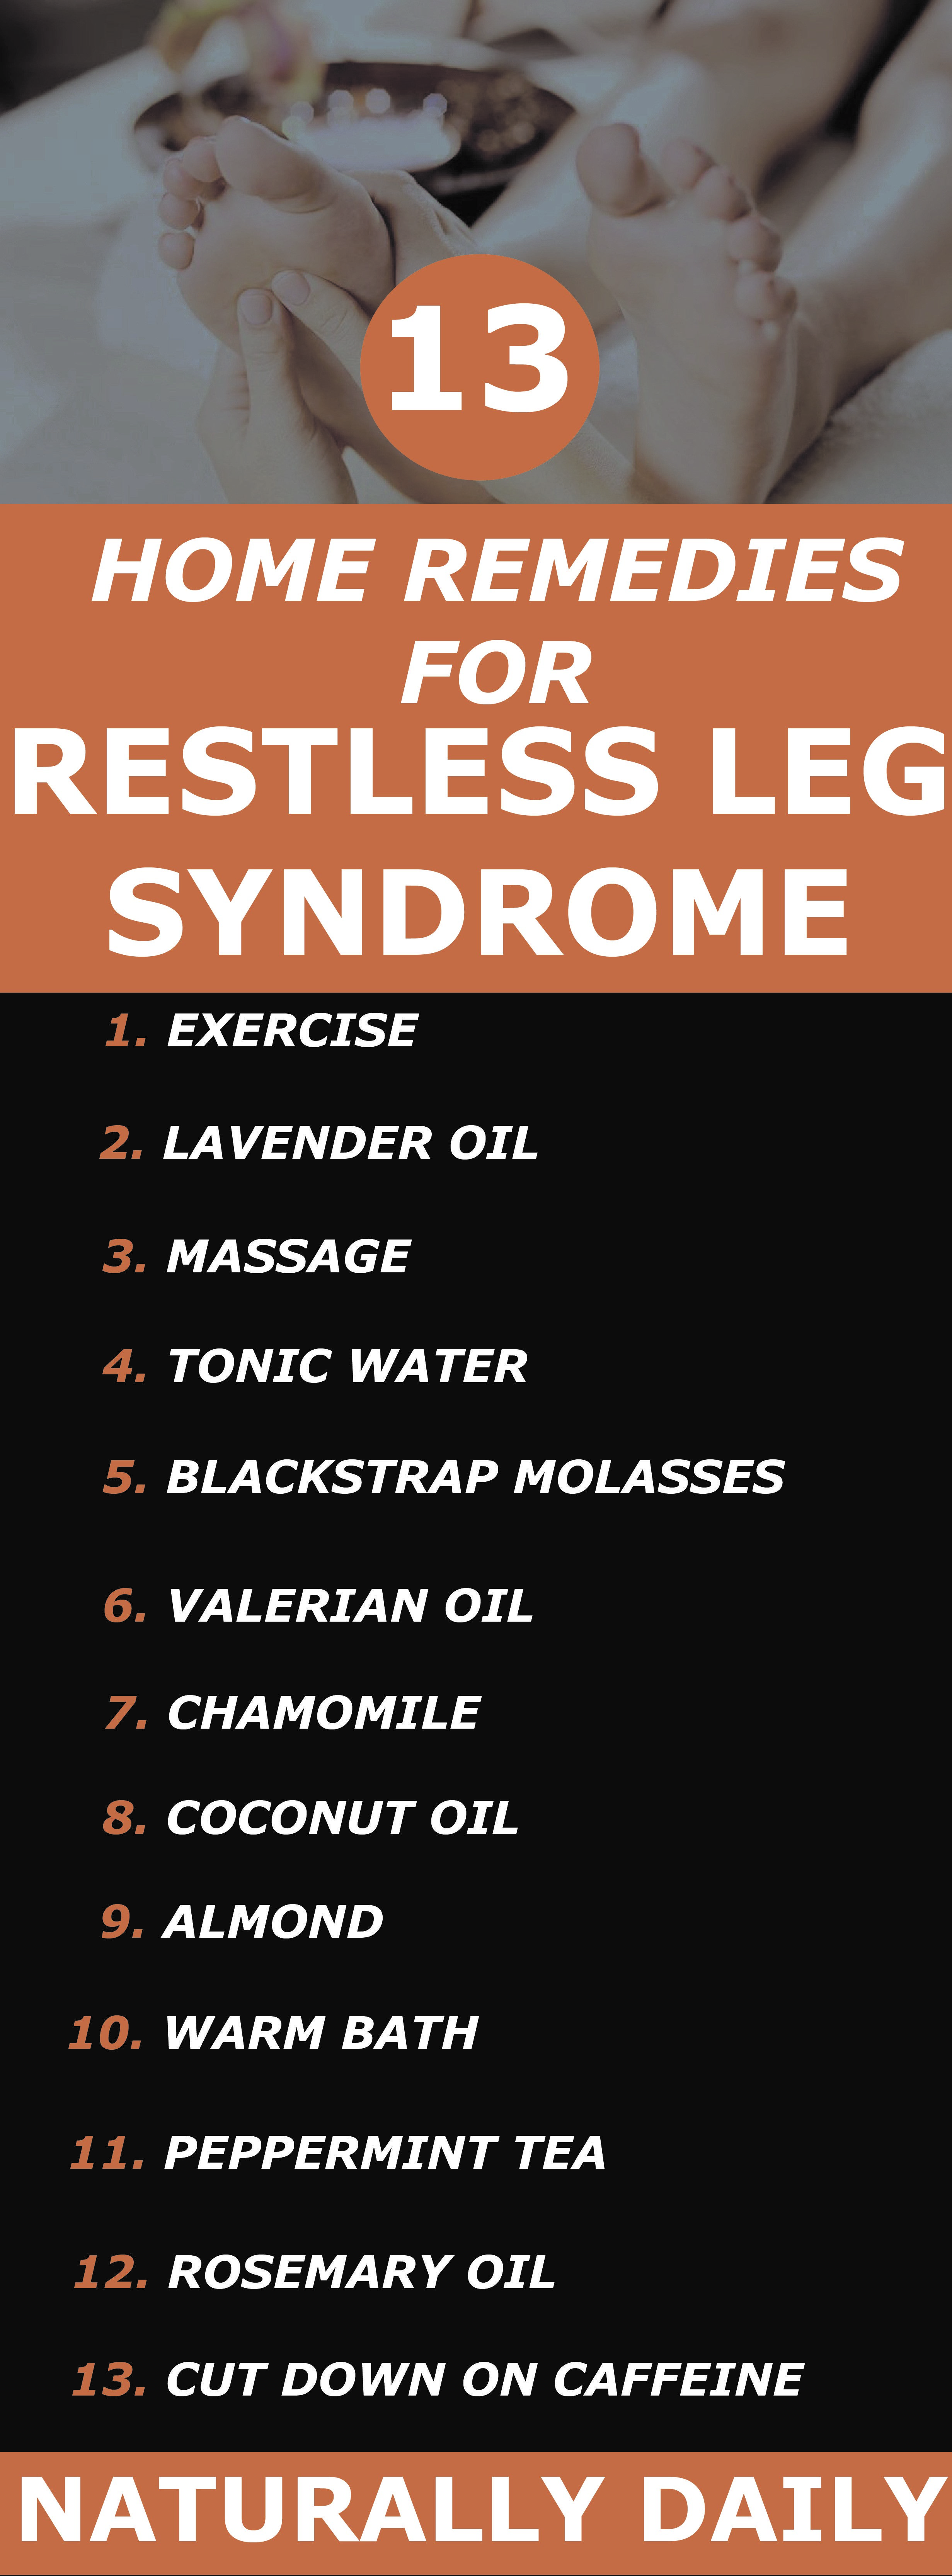 13 Best Home Remedies For Restless Leg Syndrome Restless Leg Syndrome Restless Leg Remedies Restless Legs